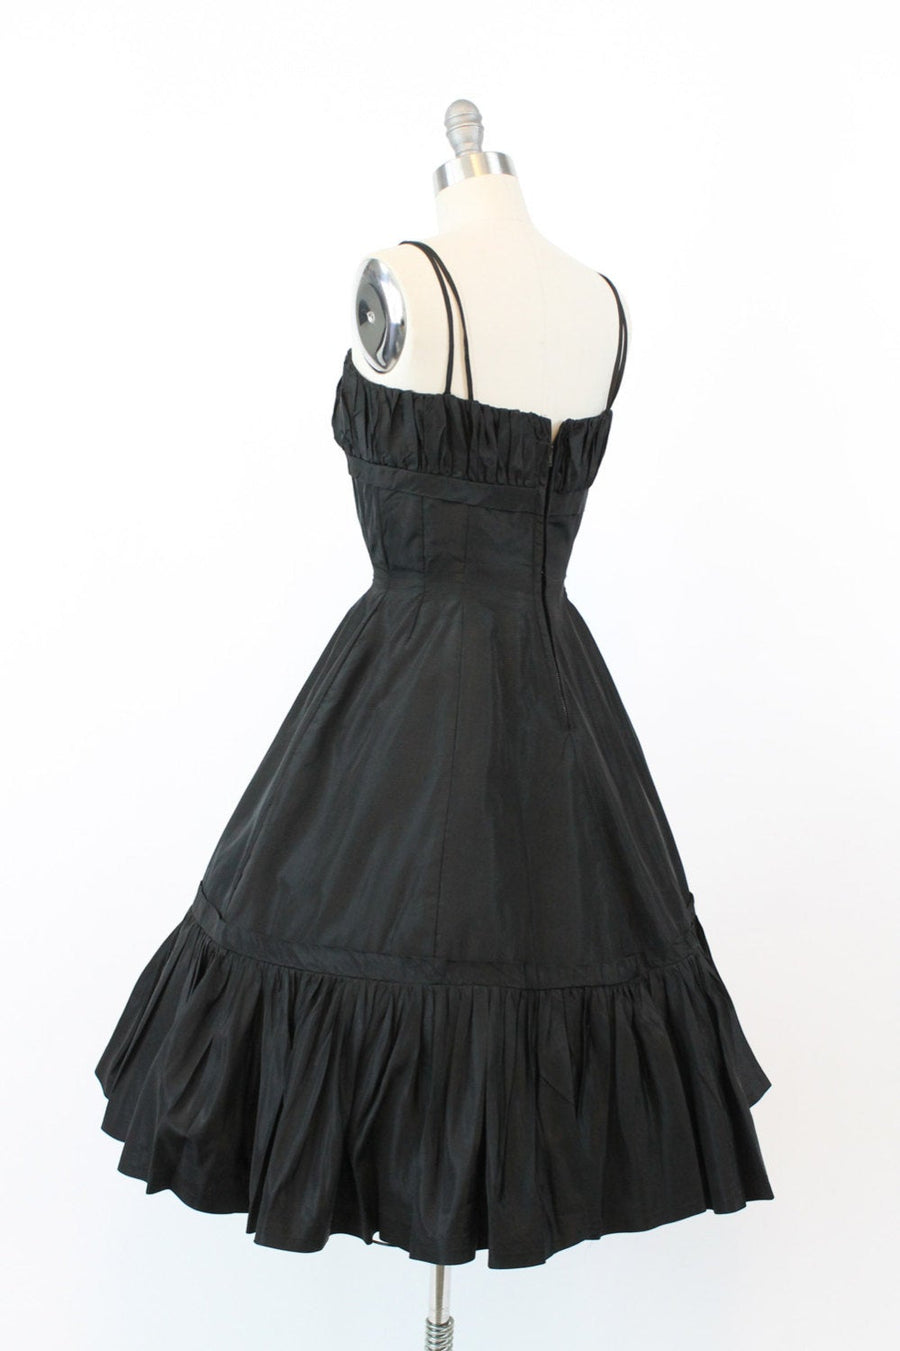 1950s Emma Domb dress | vintage cocktail dress | new in